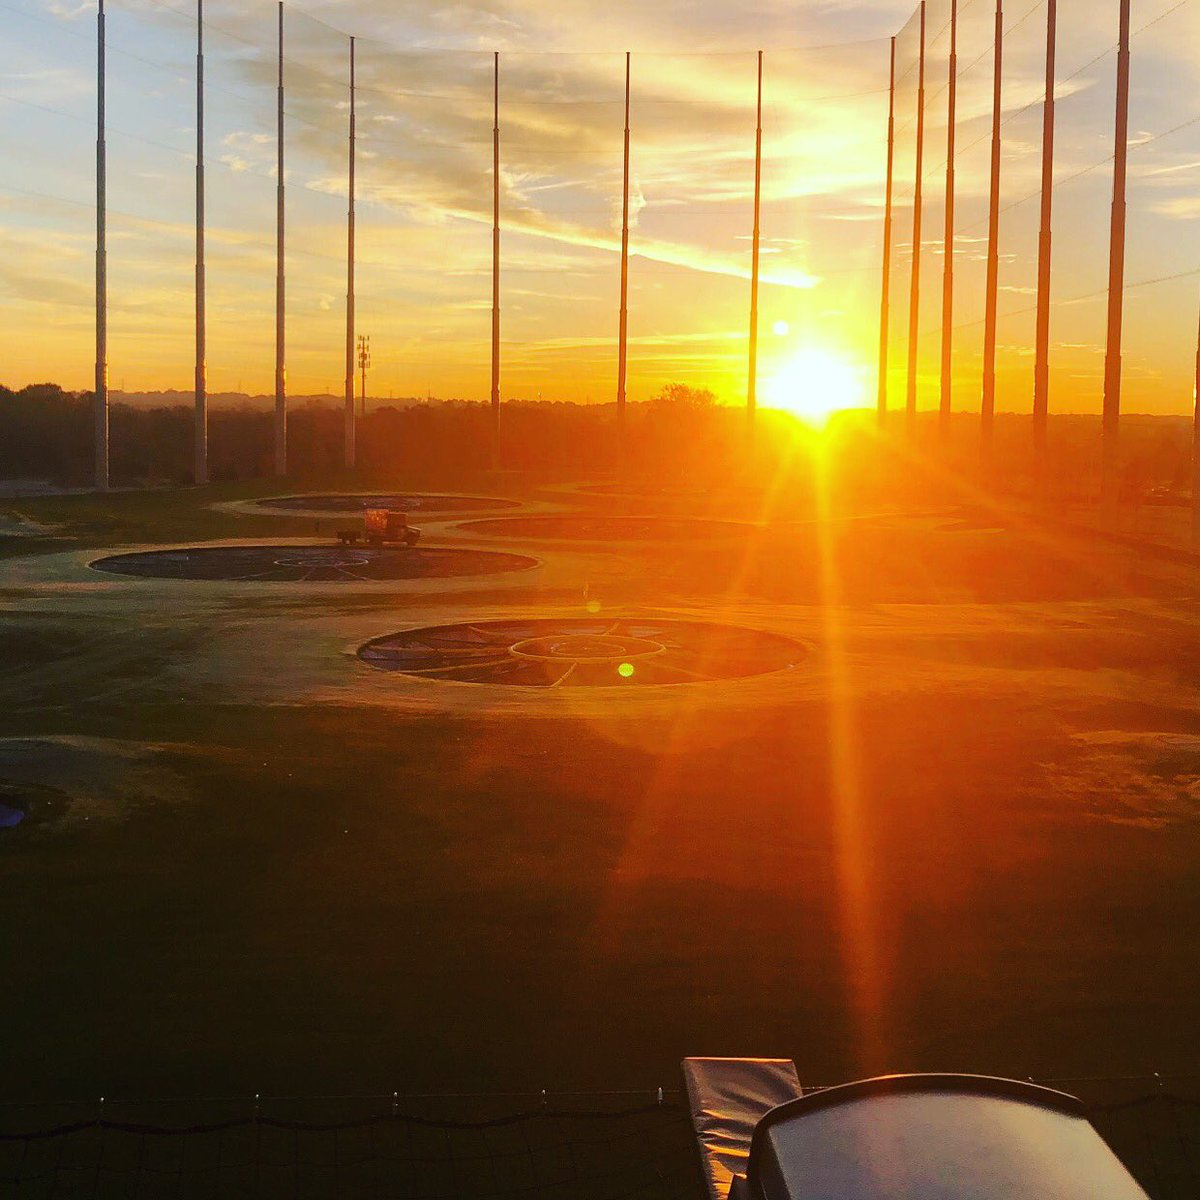 The sunrise over @Topgolf #Columbus is beautiful! We are excited to see it open today ⛳️